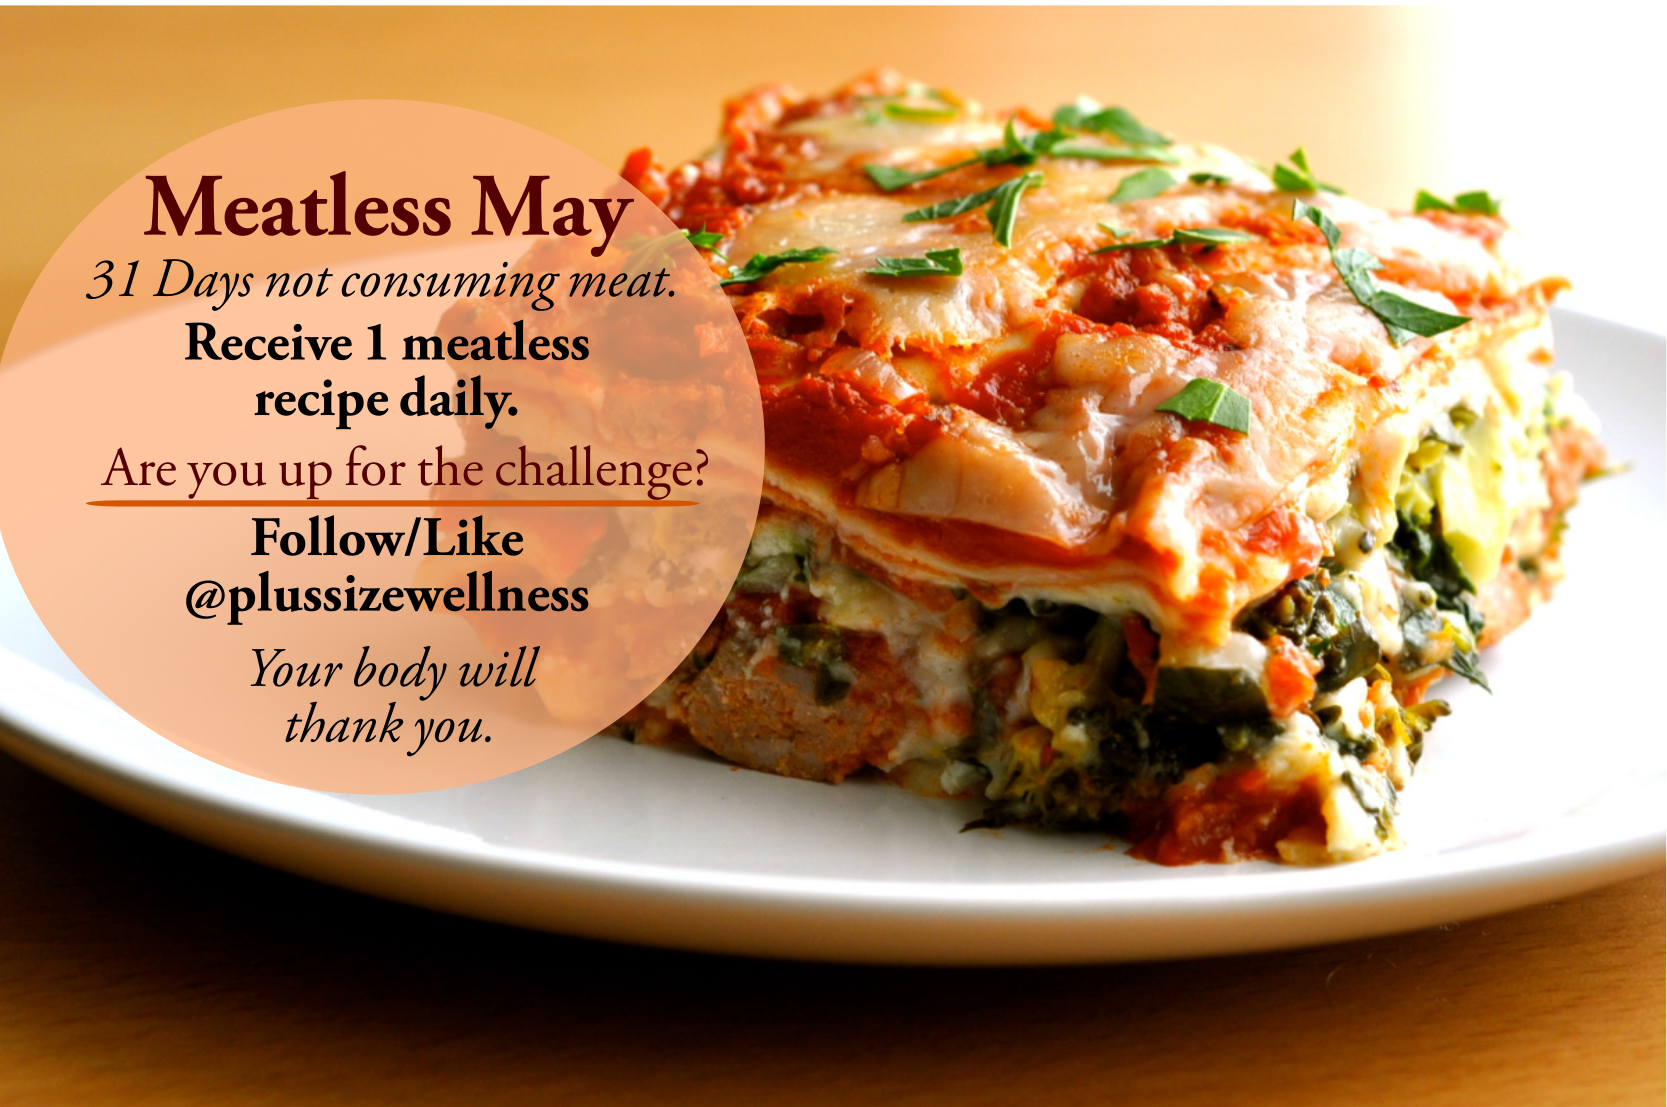 Plus Size Wellness Meatless May Challenge